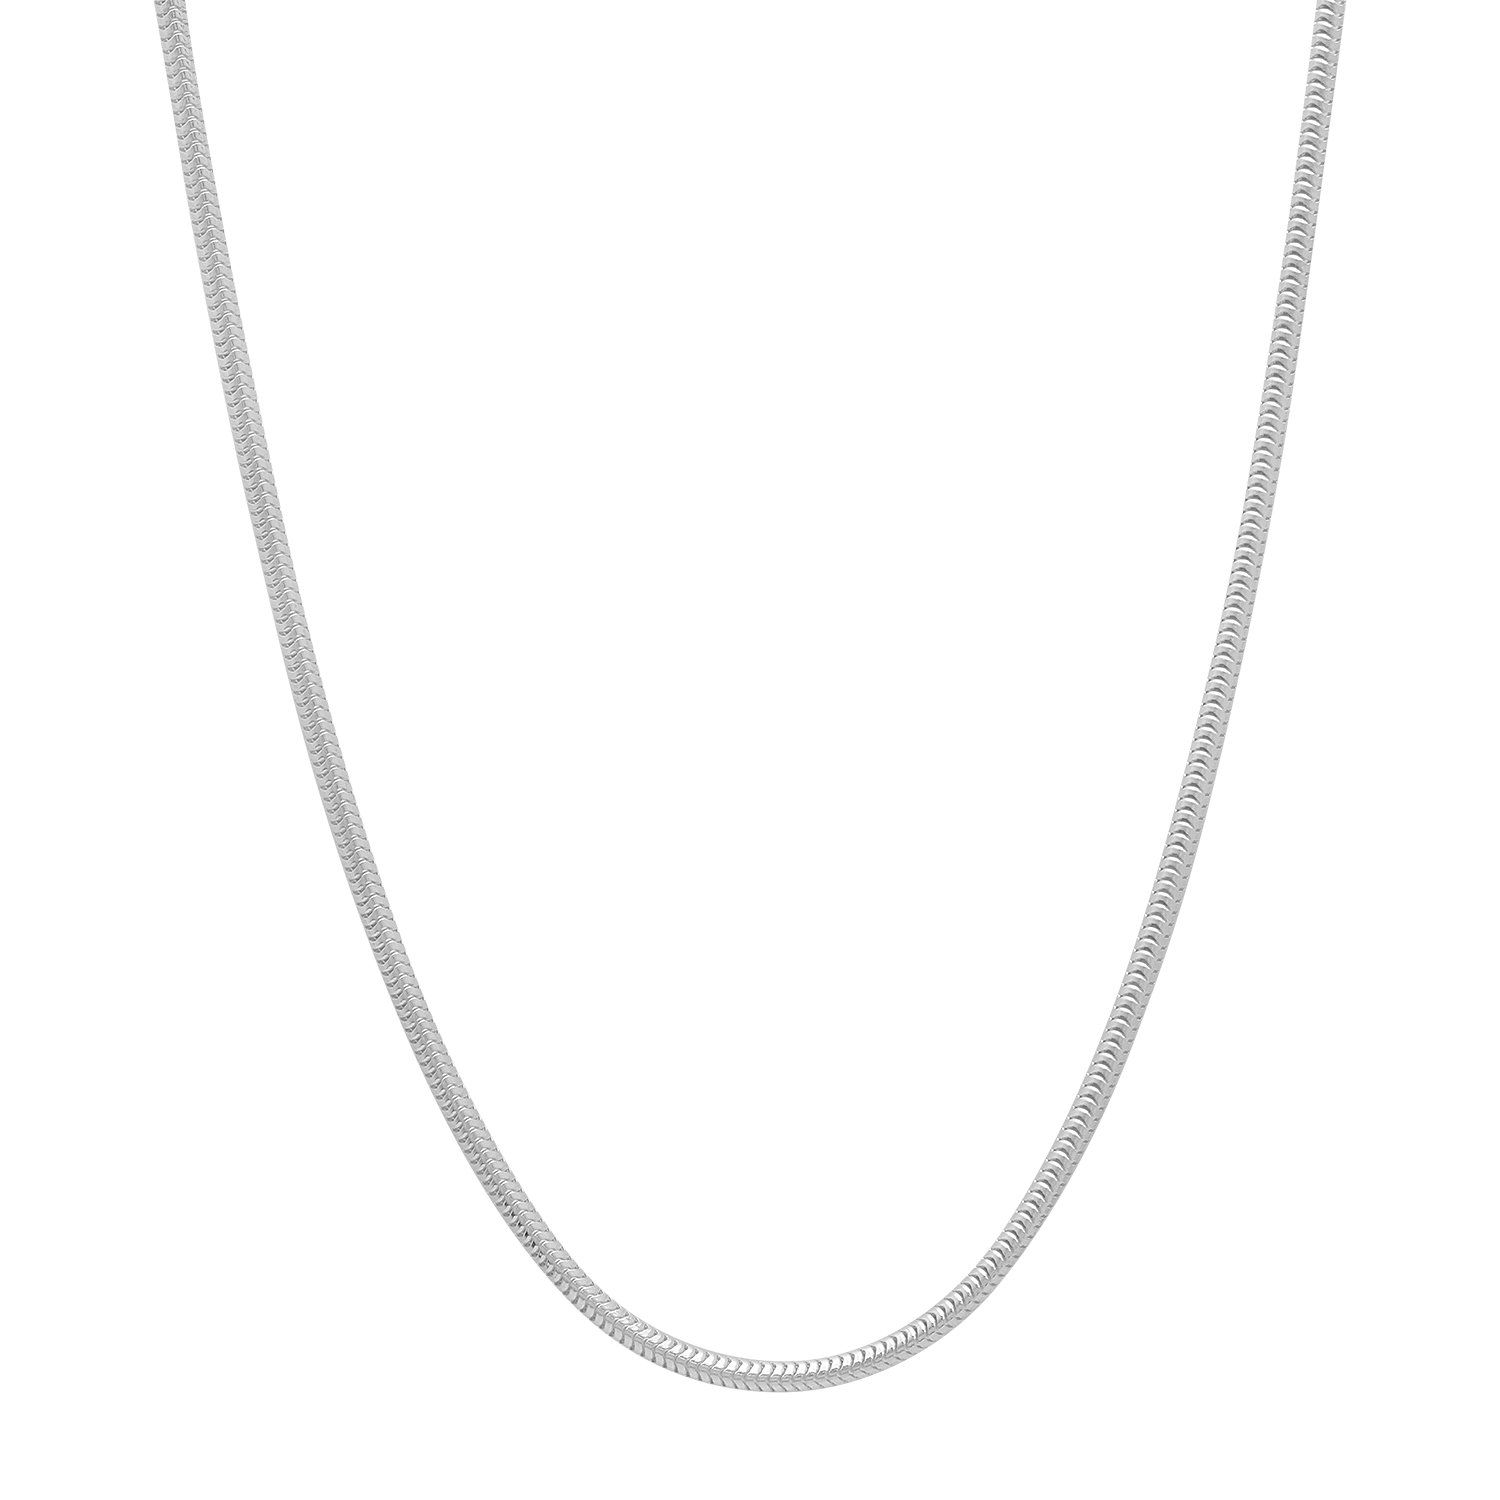 Solid 925 Sterling Silver 1.5mm Snake Chain Necklace Made in Italy